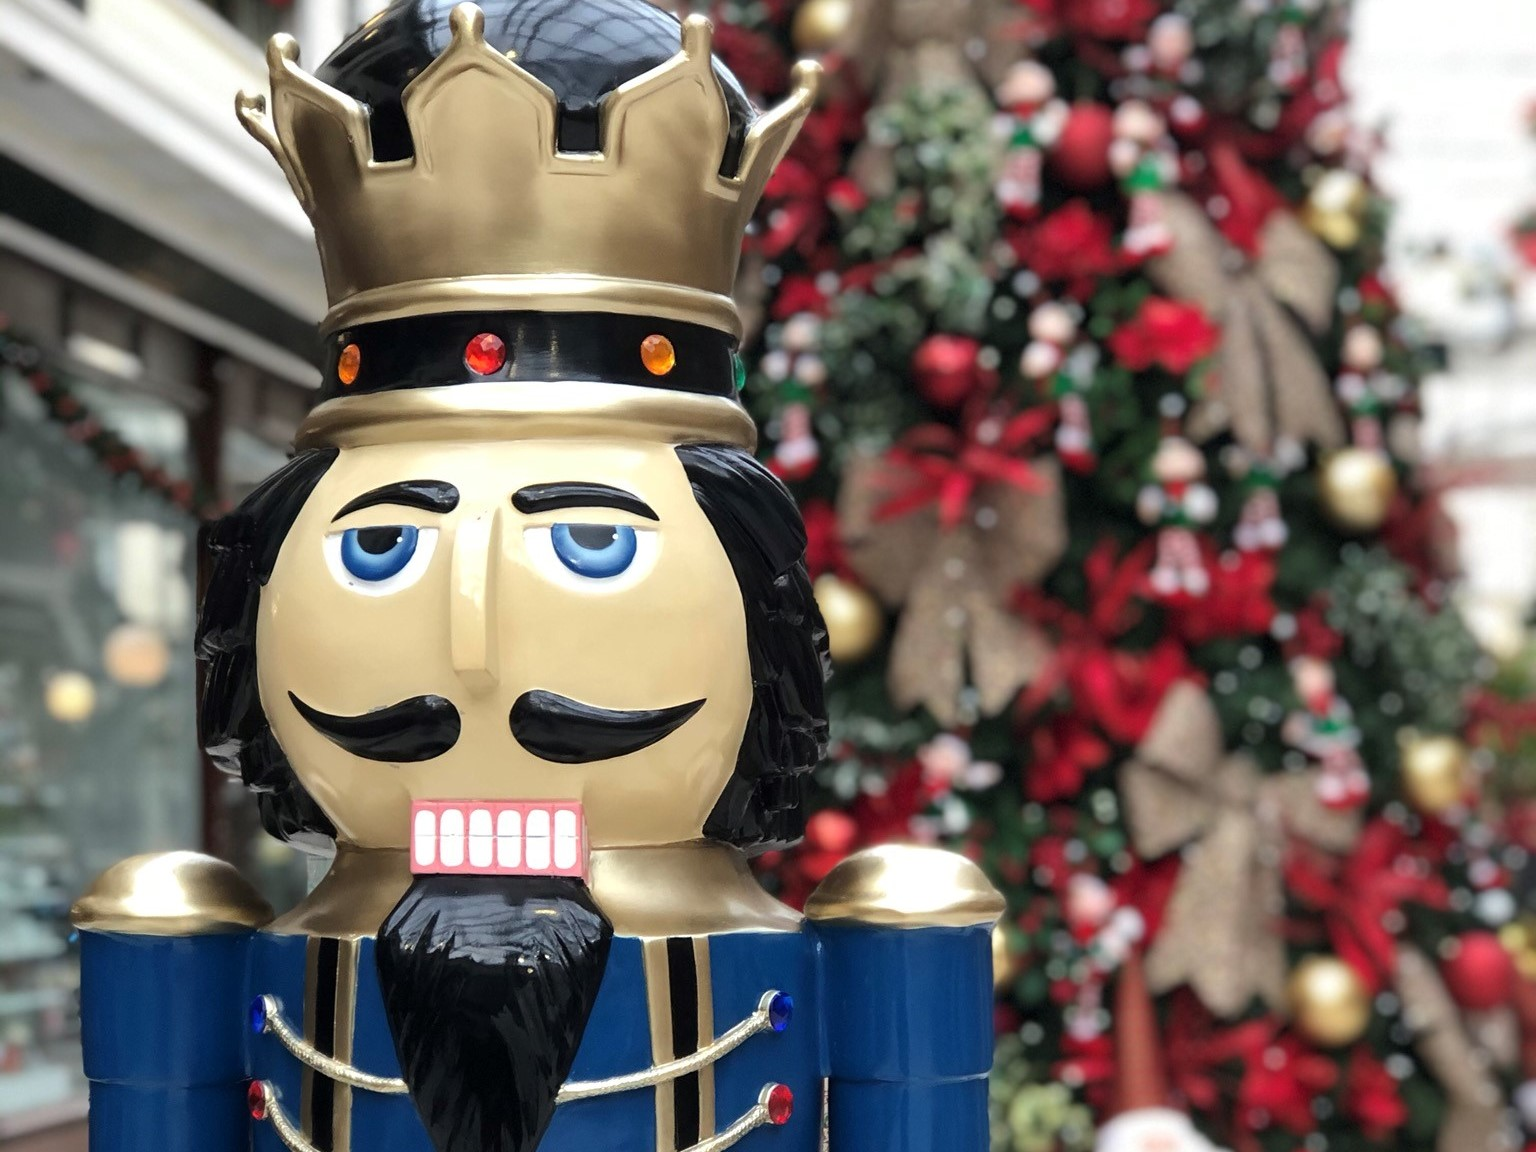 Nutcracker figure, part of Christmas in Southport